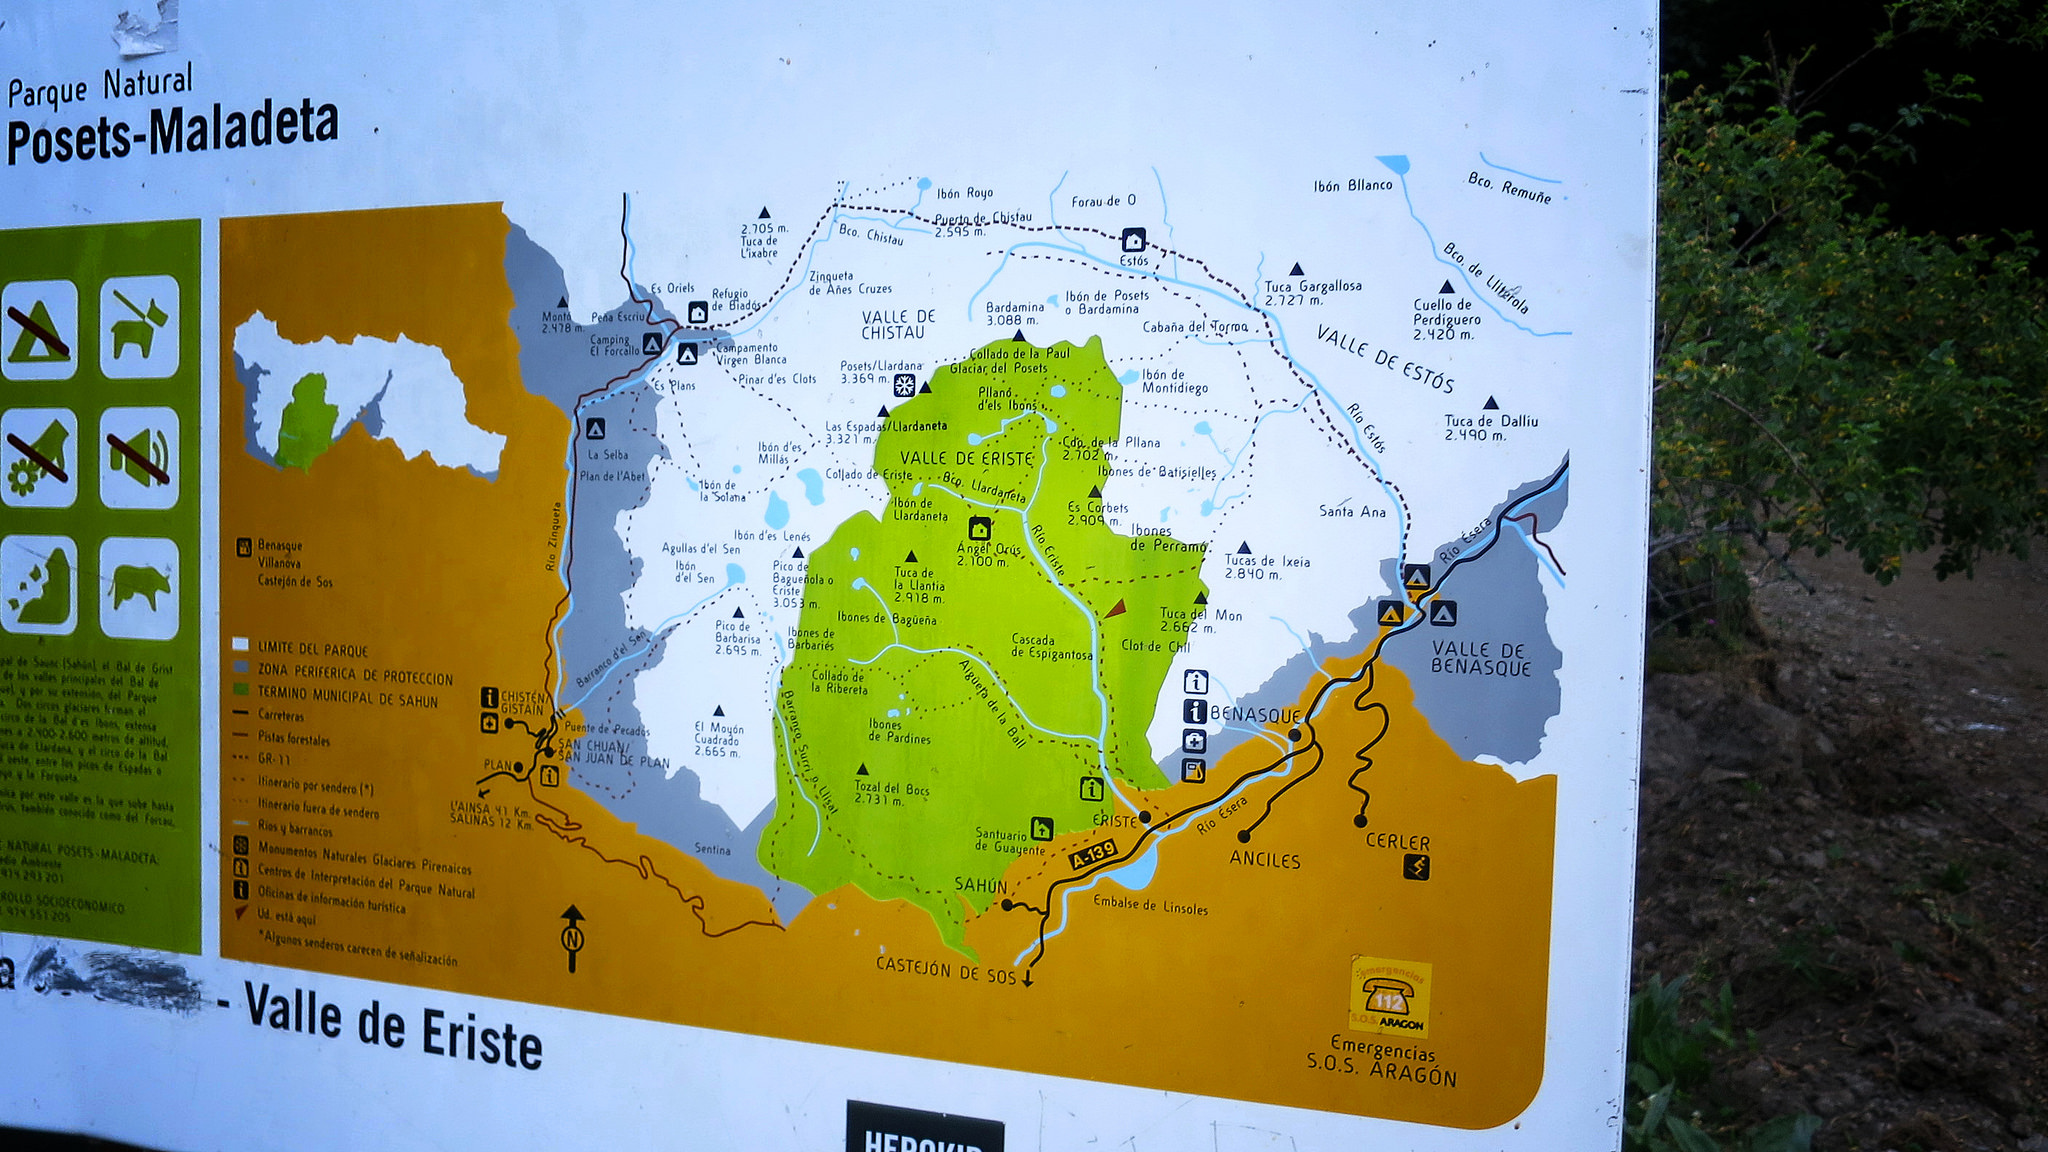 valle de Eriste mapa - https://www.flickr.com/photos/wenceslaugraus/